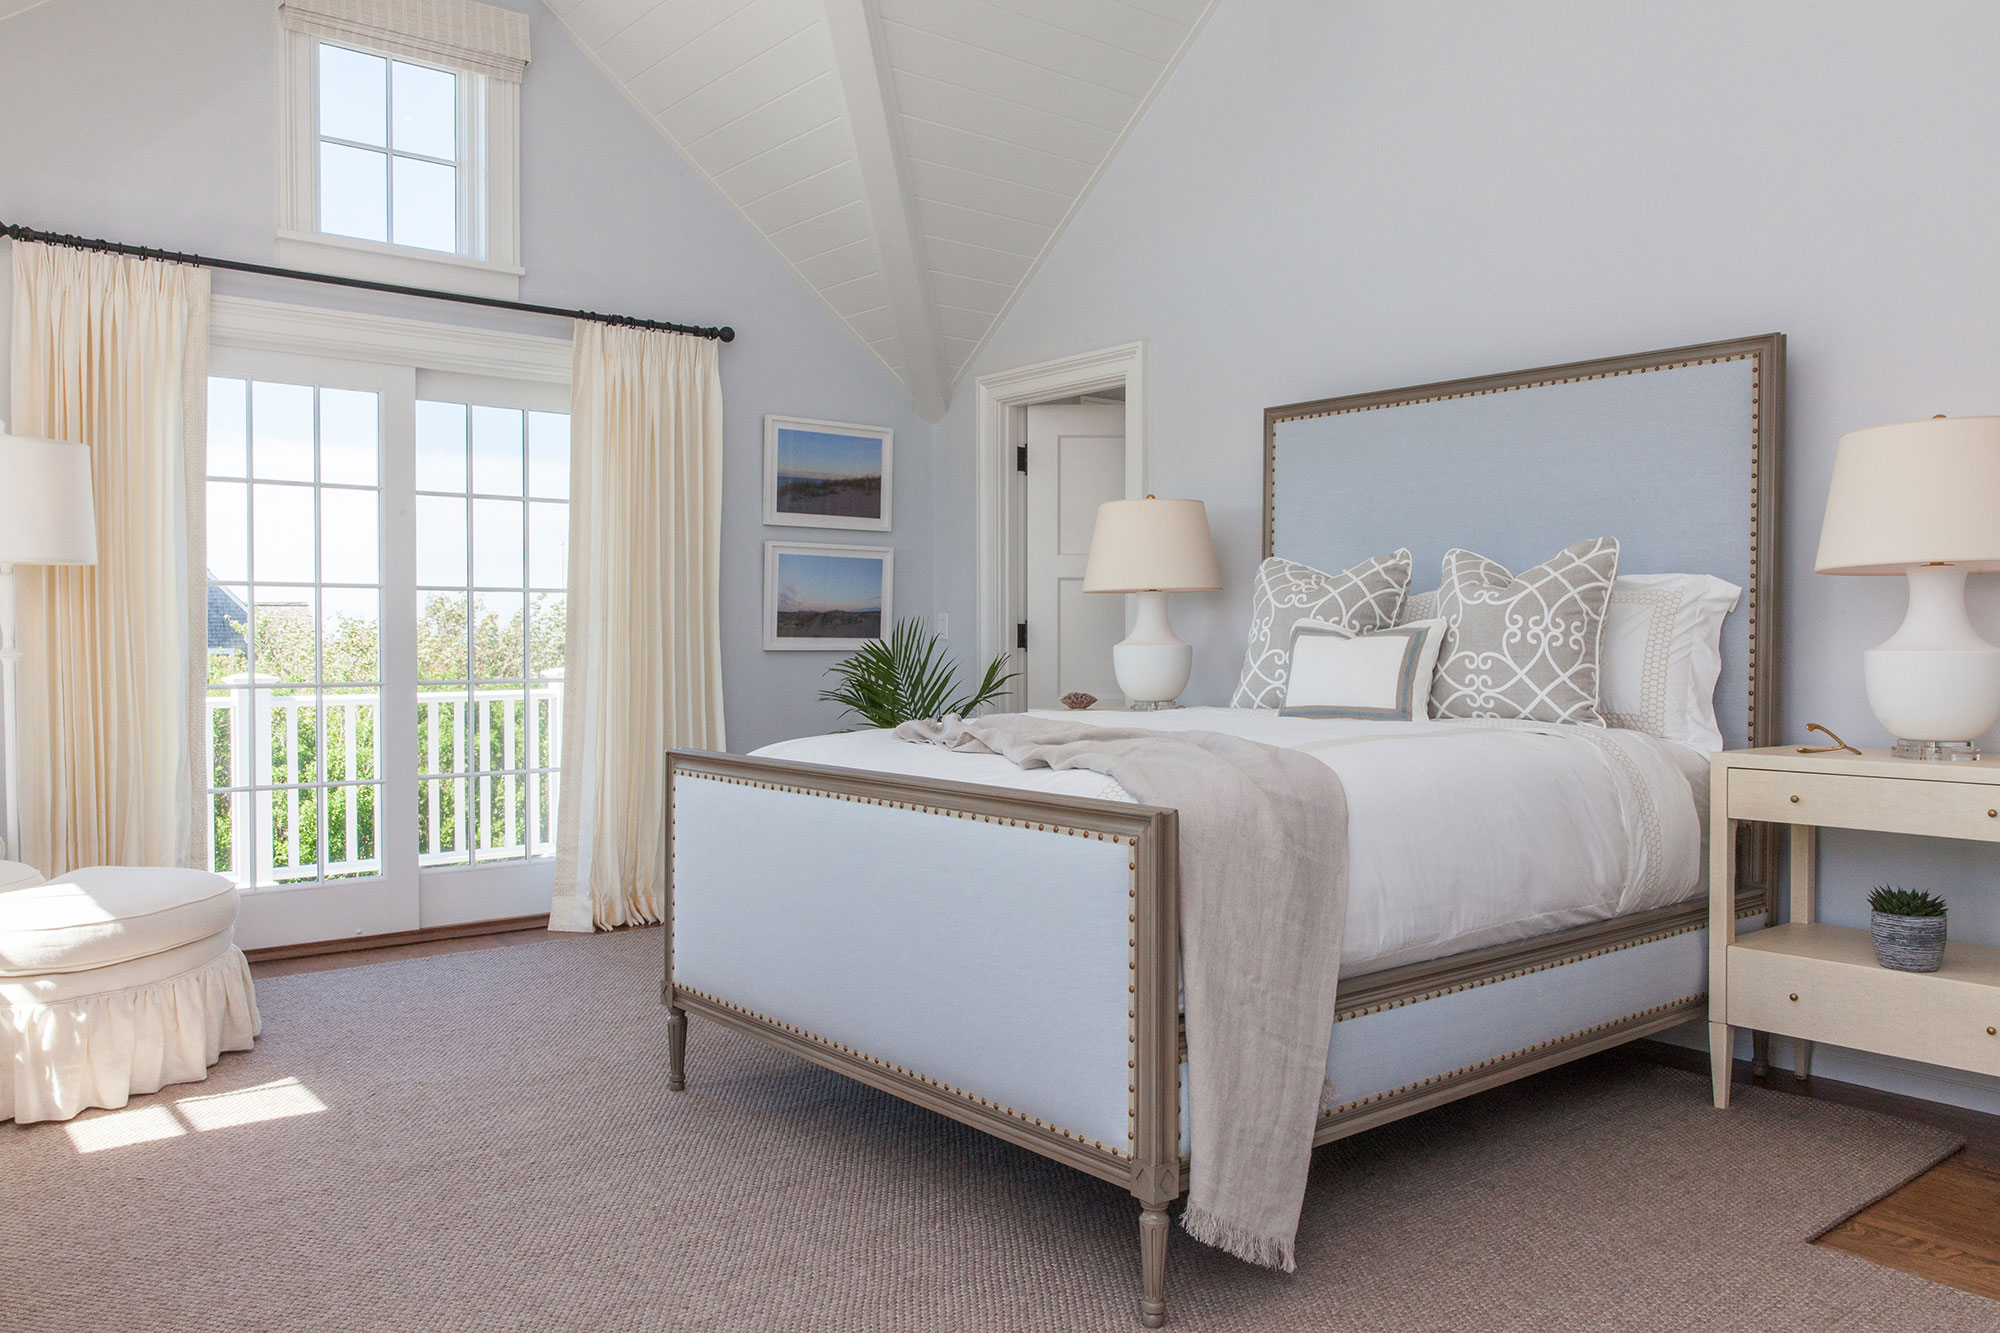 Carolyn-Thayer-Interior-Design-Massachusetts-Bedroom